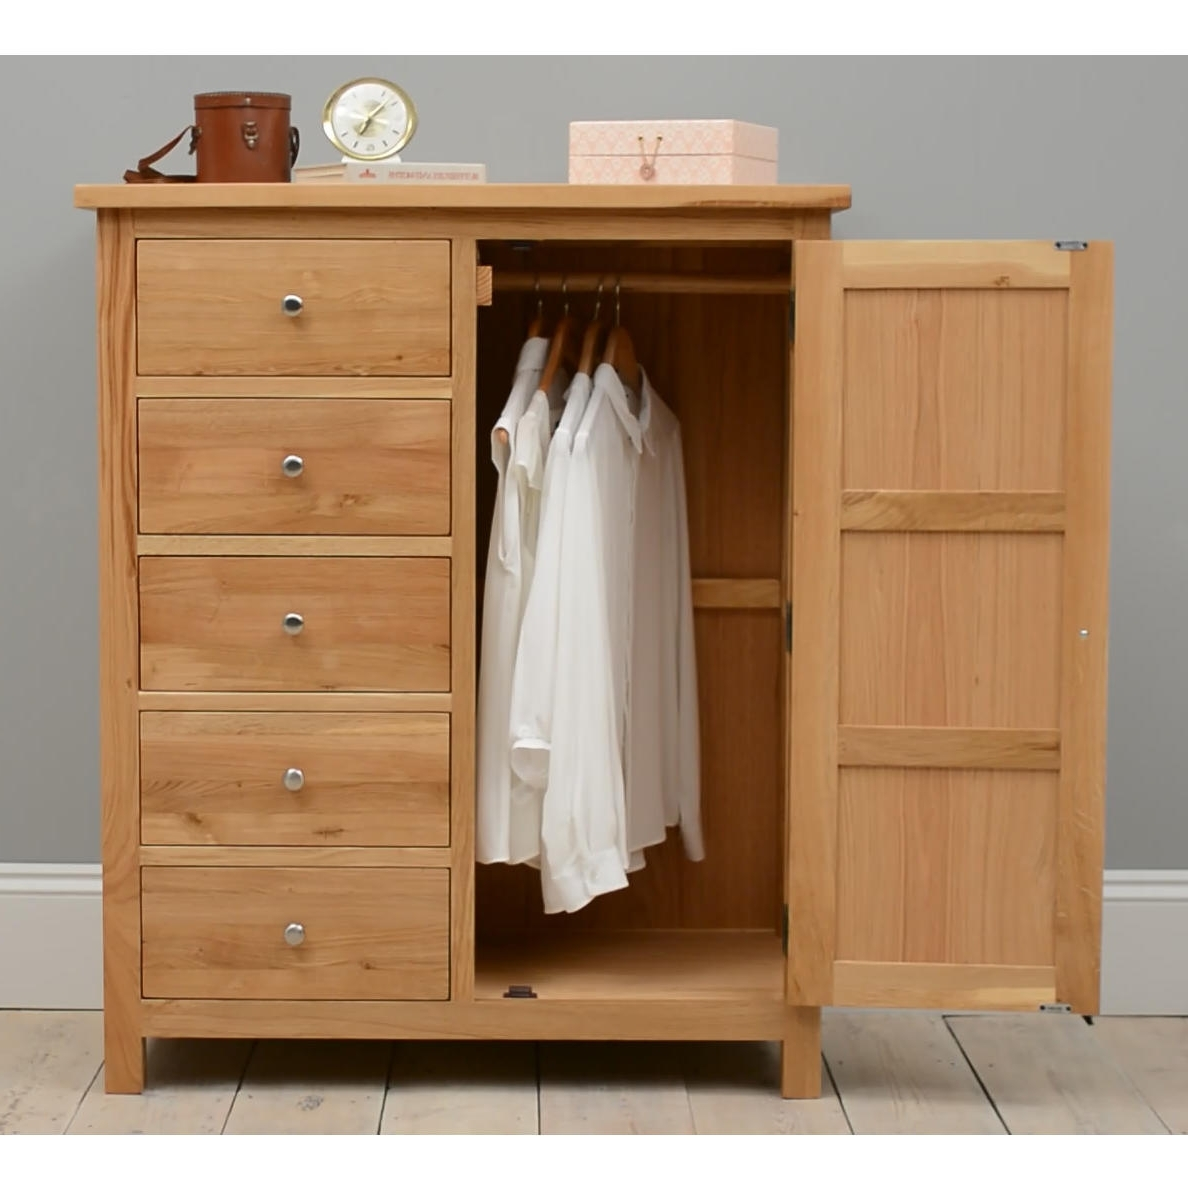 Chest Of Drawers Wardrobes Combination Throughout Popular Buy Oak, Pine, Painted & Modern Wardrobes At Furniture Octopus (View 4 of 15)